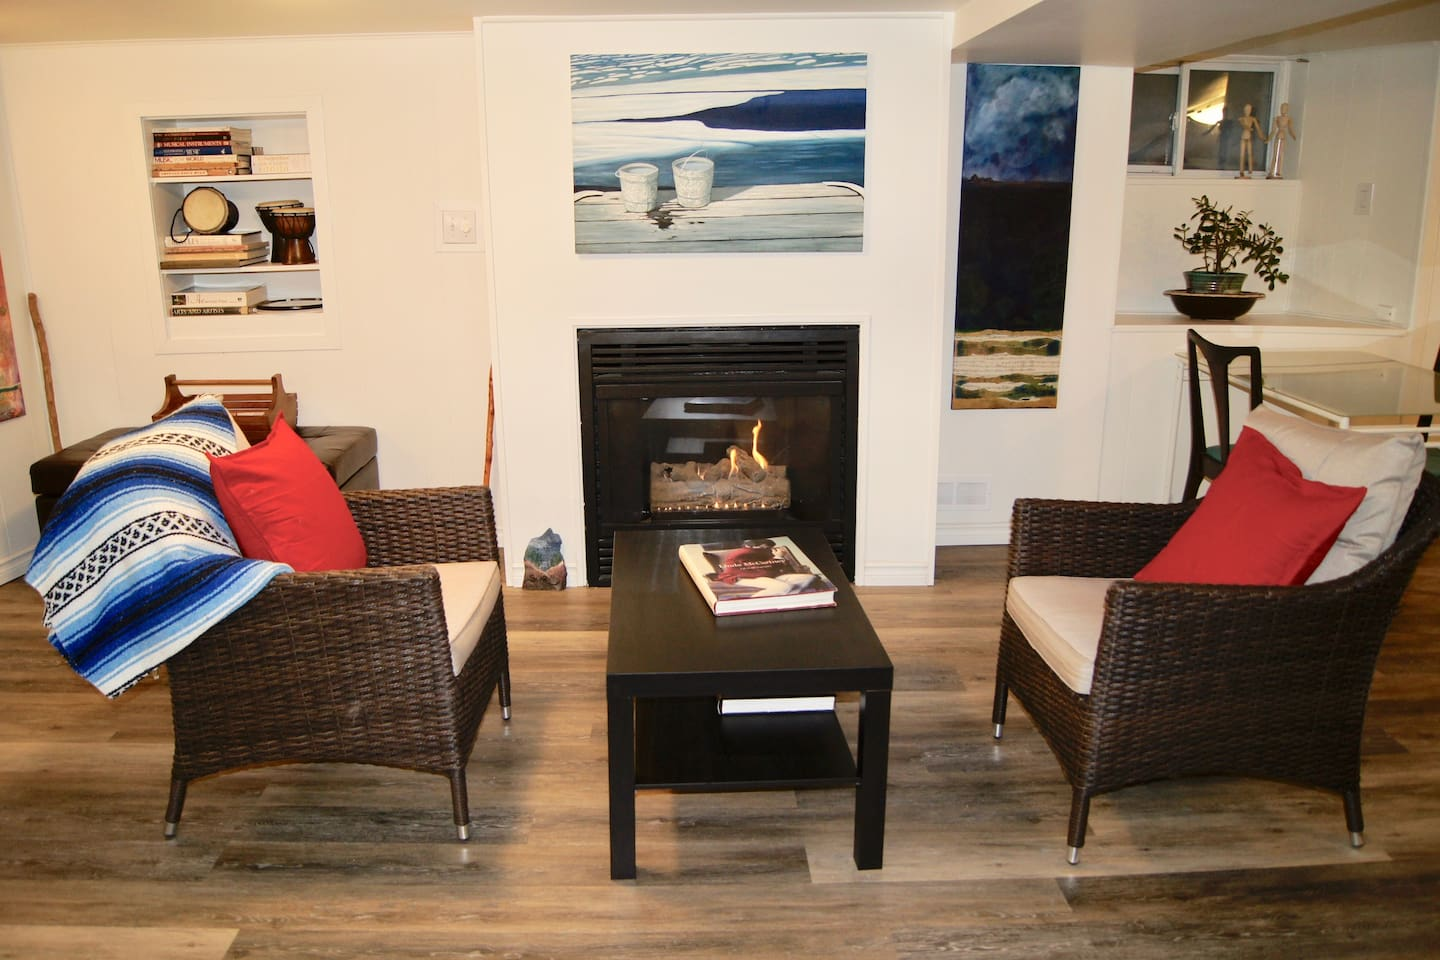 warm, inviting...sit in front of the fire and have a glass of wine